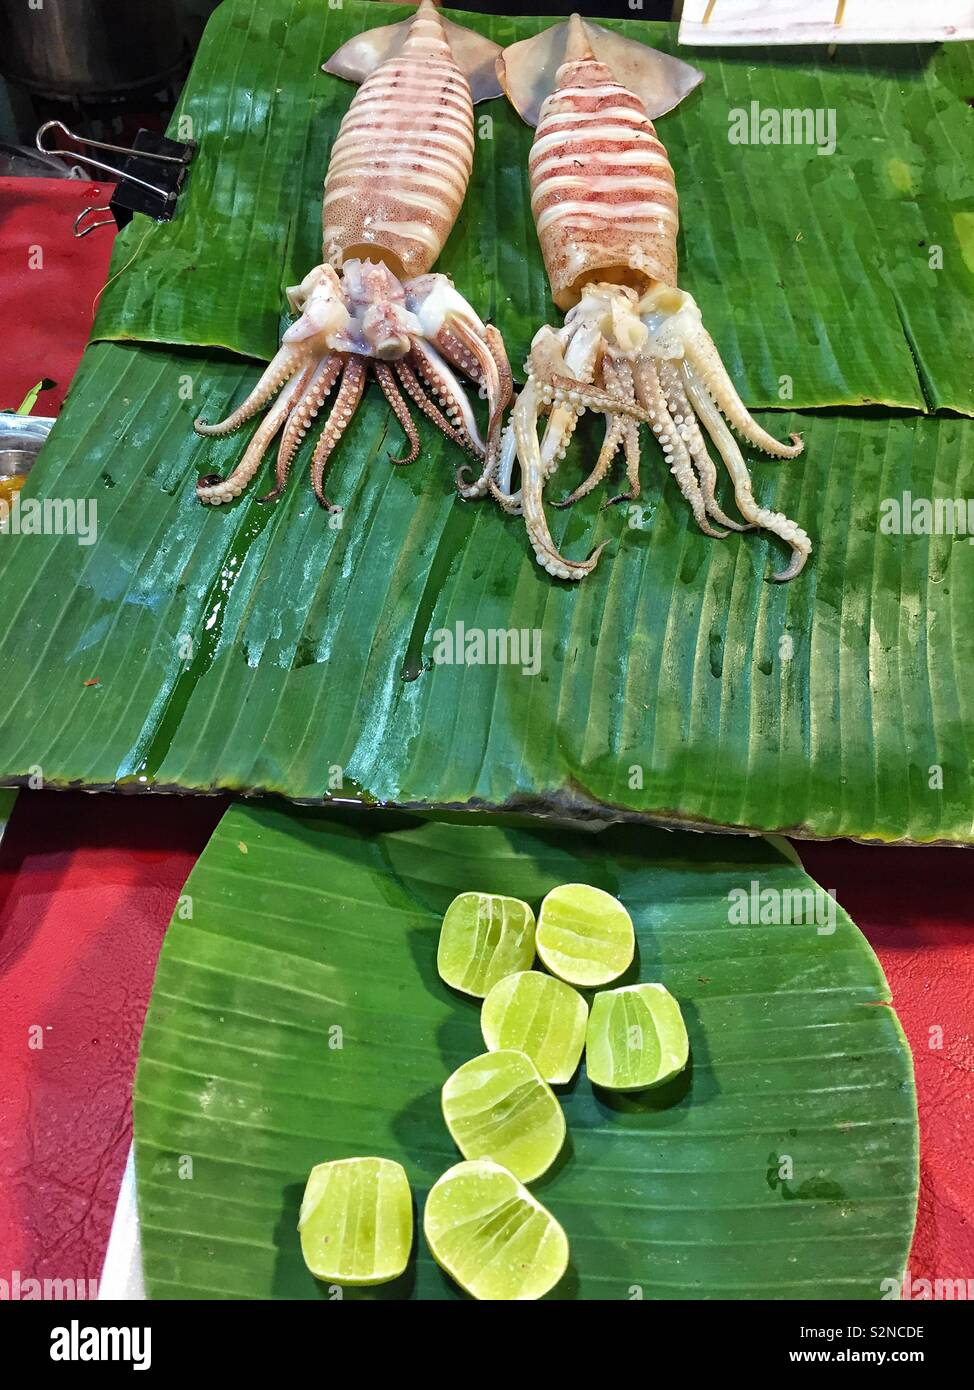 Two raw squids on banana leaf and lime slices - Stock Image